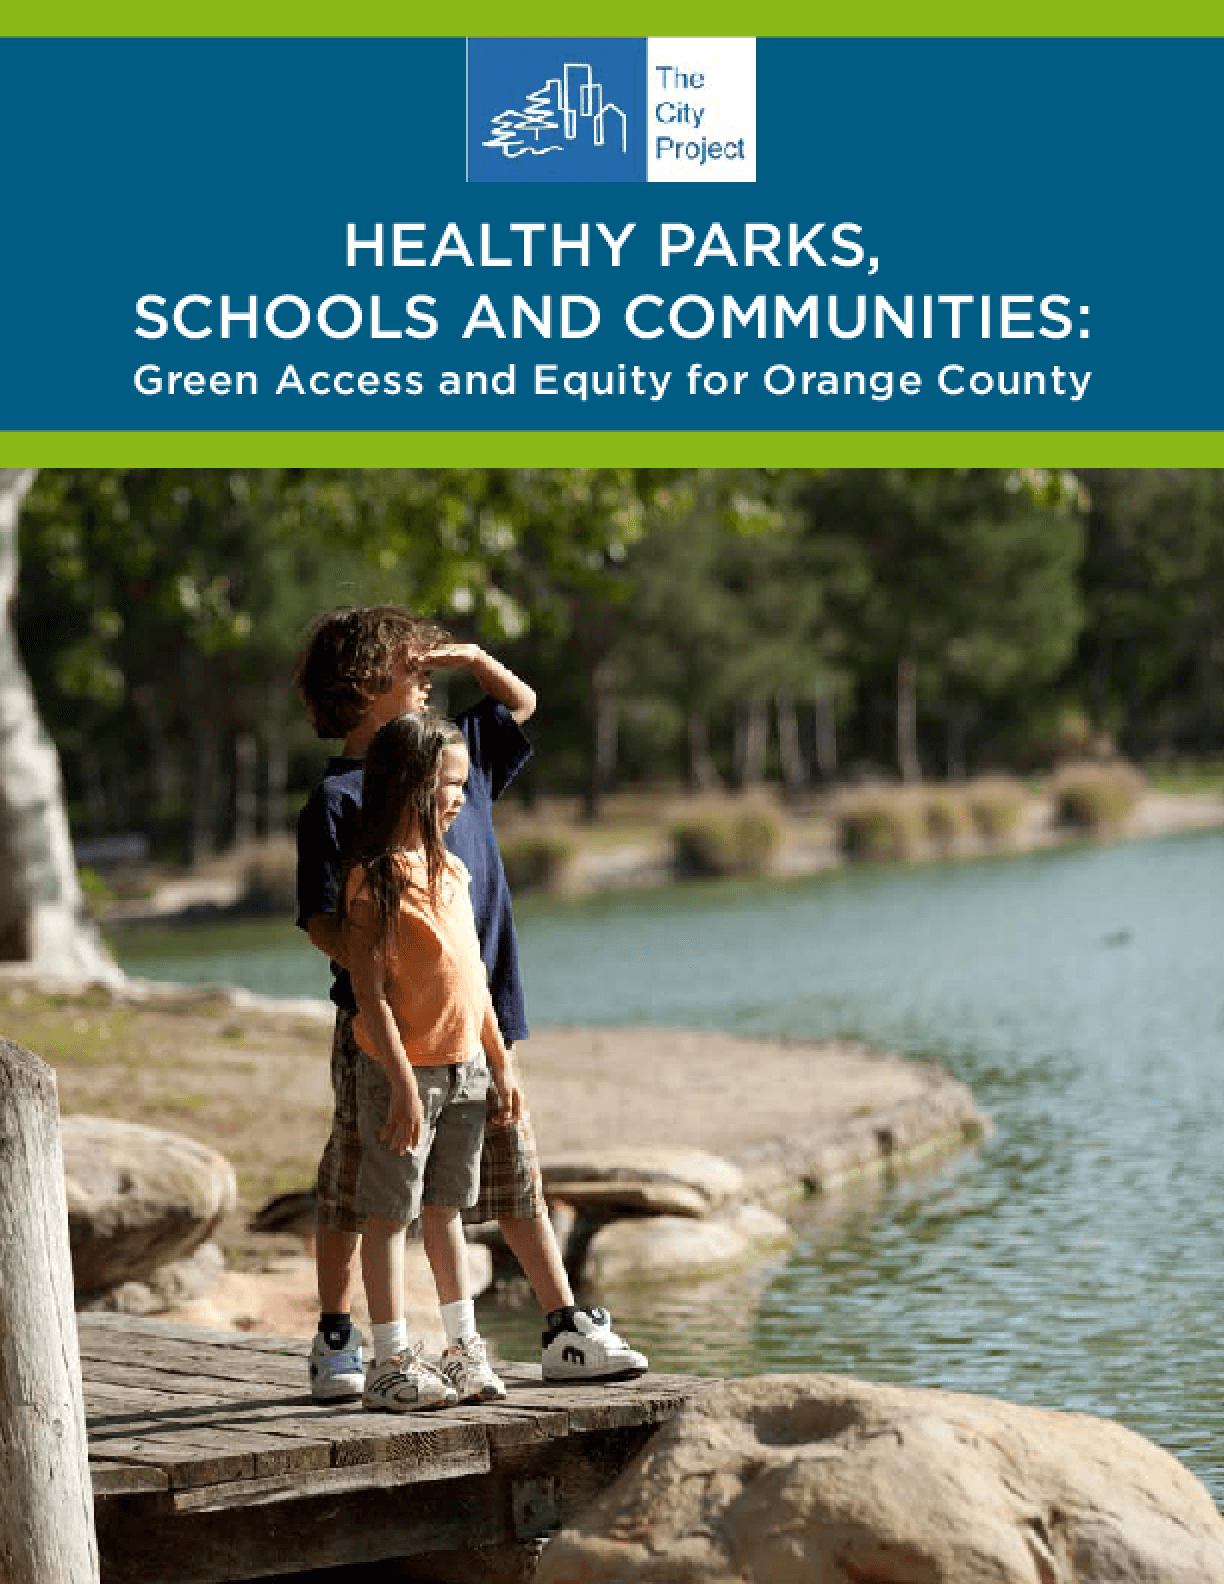 Healthy Parks, Schools and Communities: Green Access and Equity in Orange County